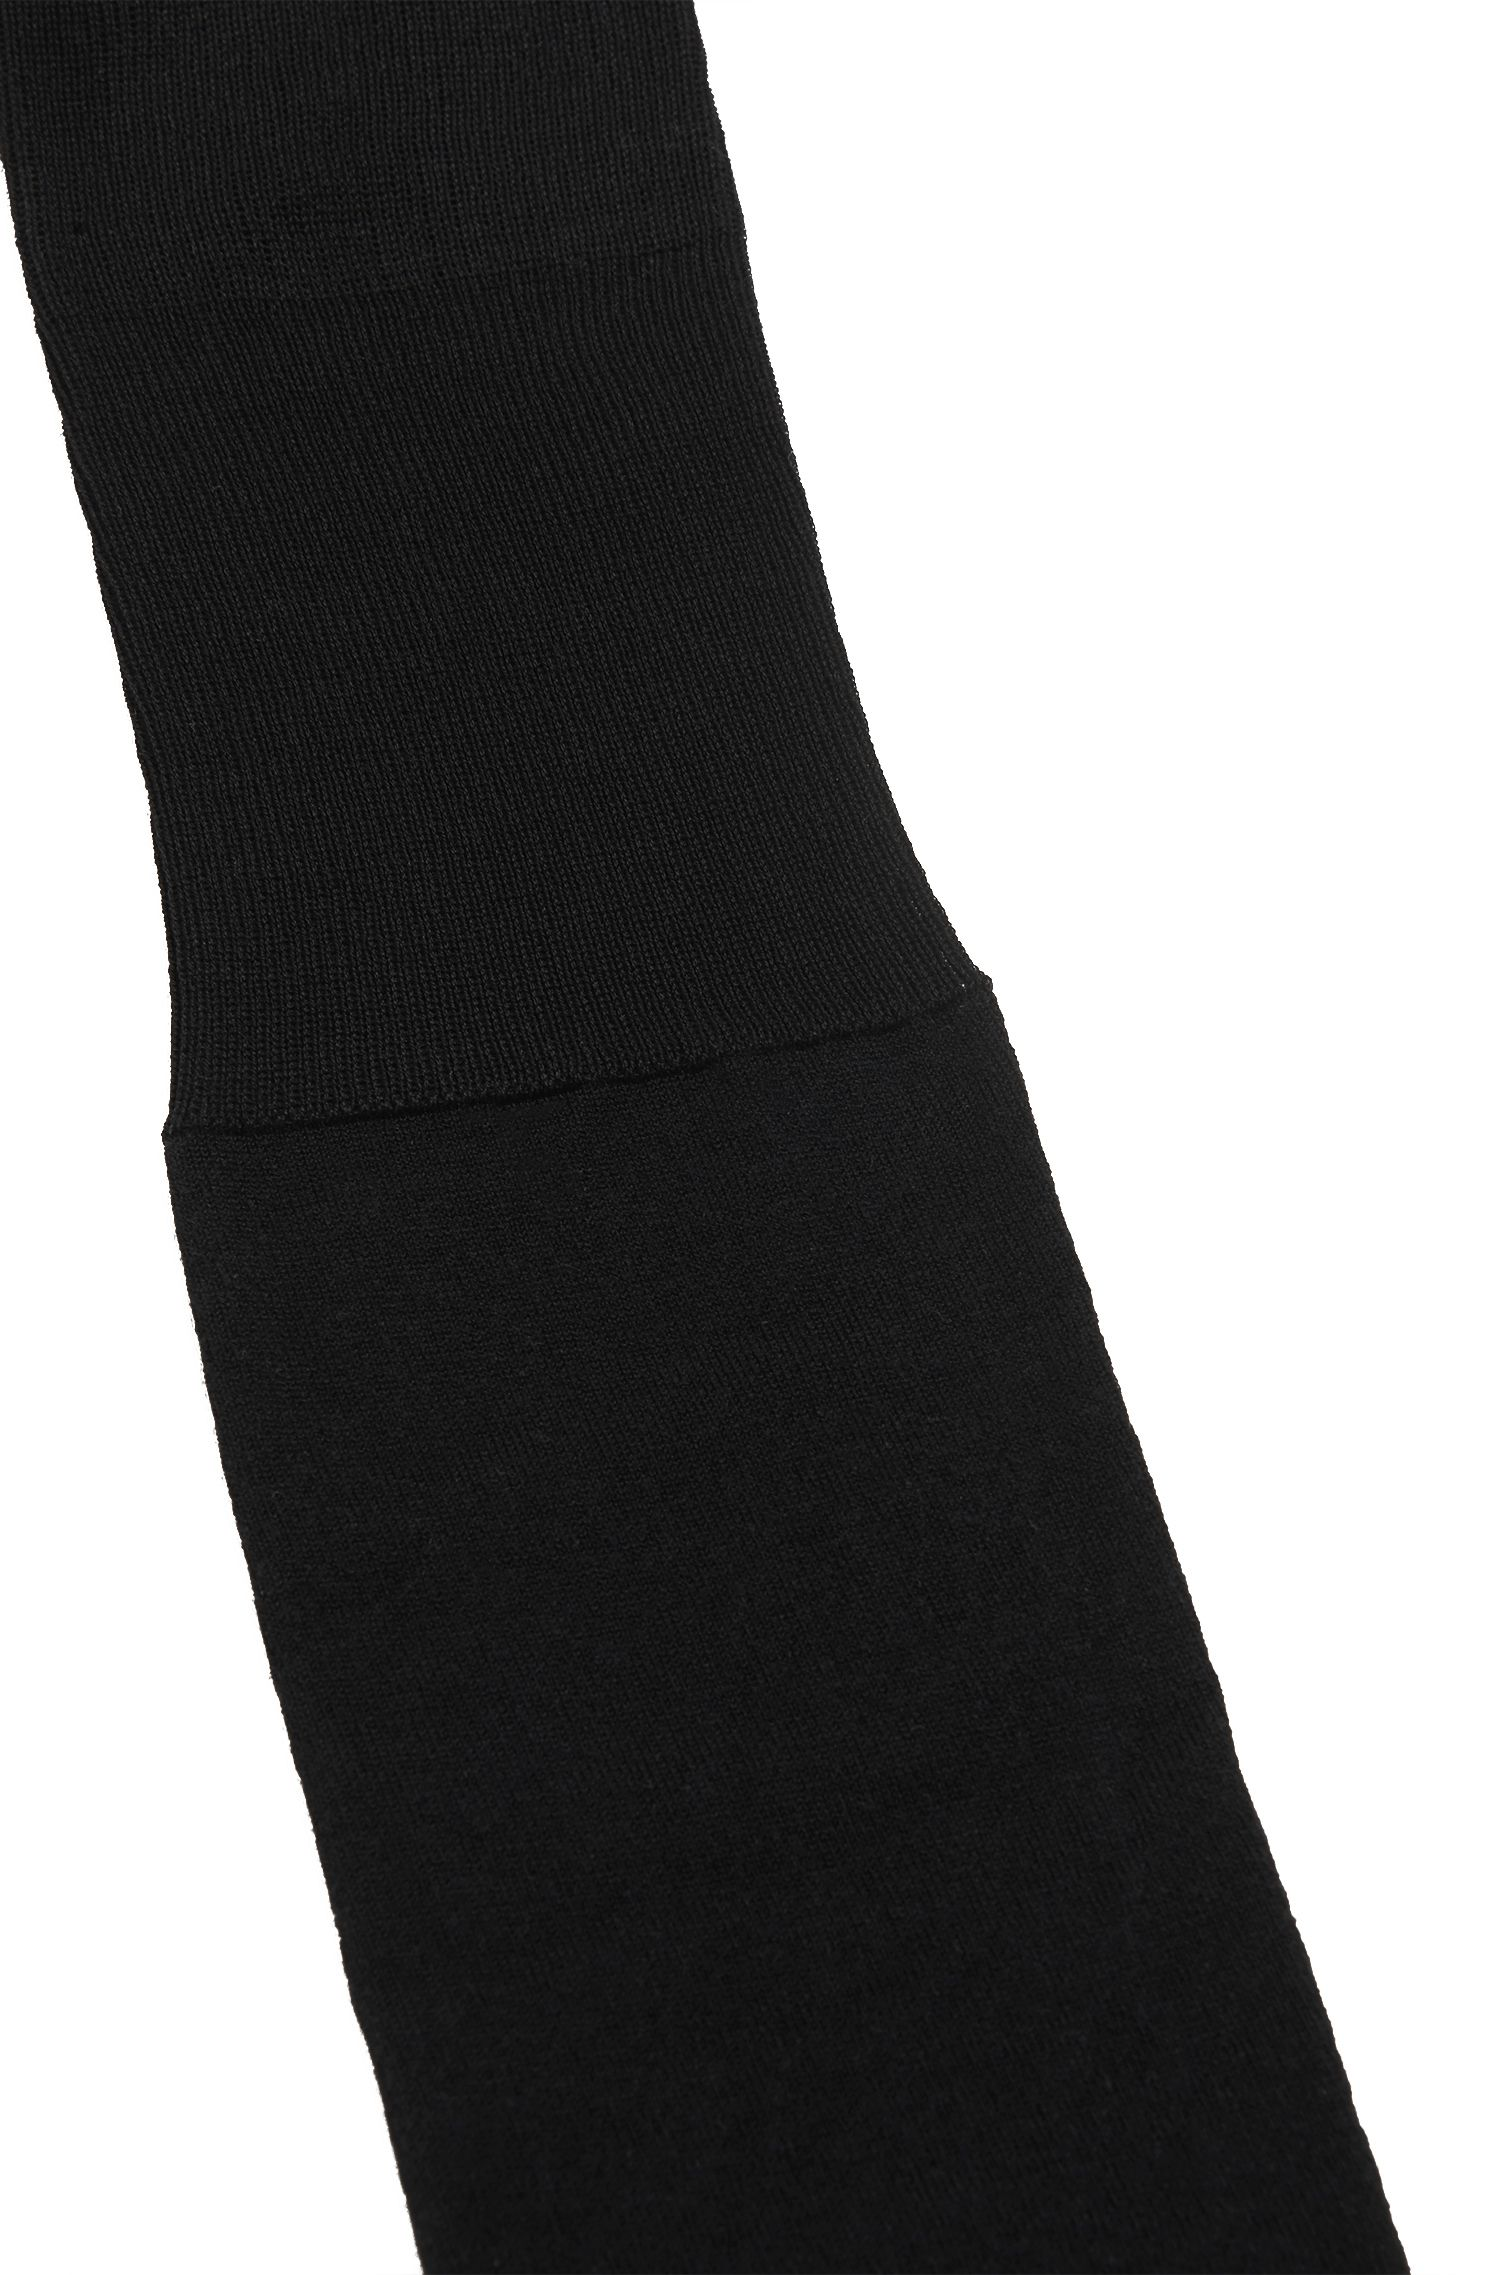 Mercerised-cotton knee-high socks with reinforced heel , Black